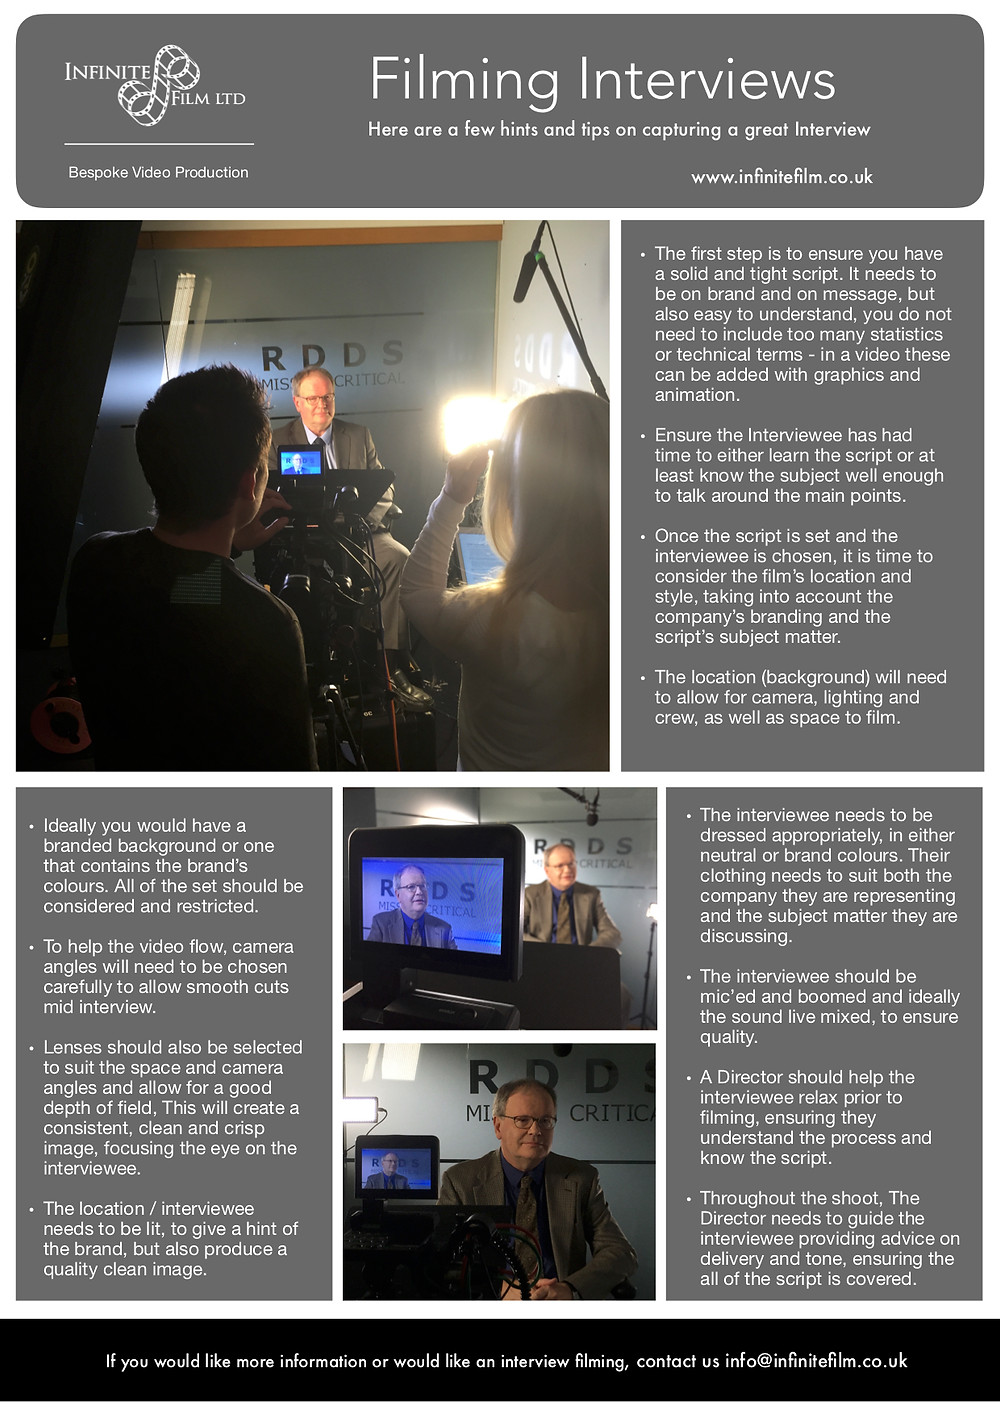 Top Tips for capturing a great Interview